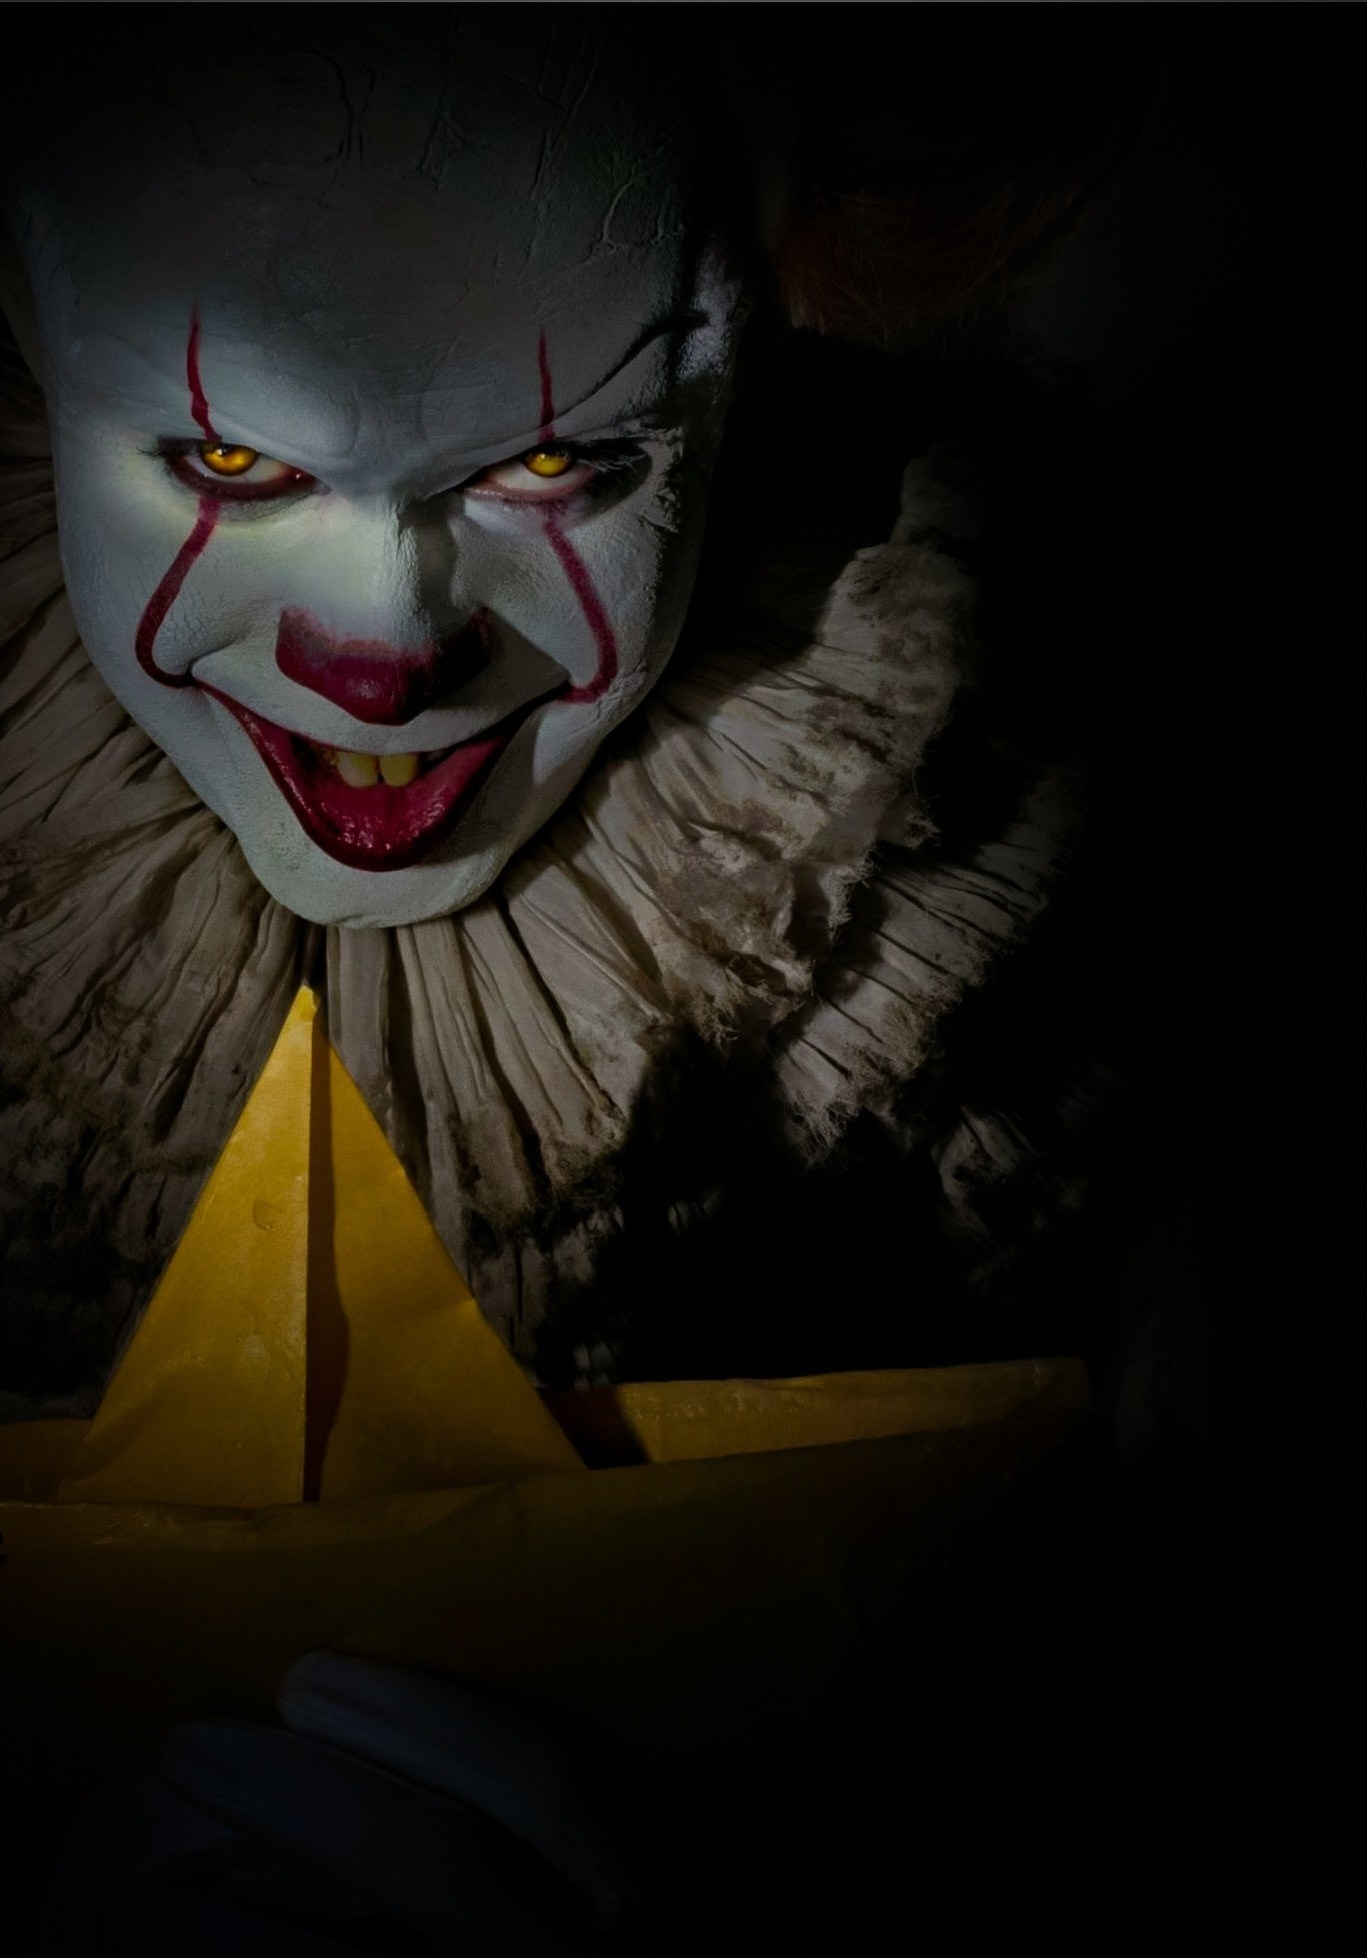 Title : pennywise the clown wallpaper (45) - download hd wallpapers. Dimension : 1367 x 1958. File Type : JPG/JPEG